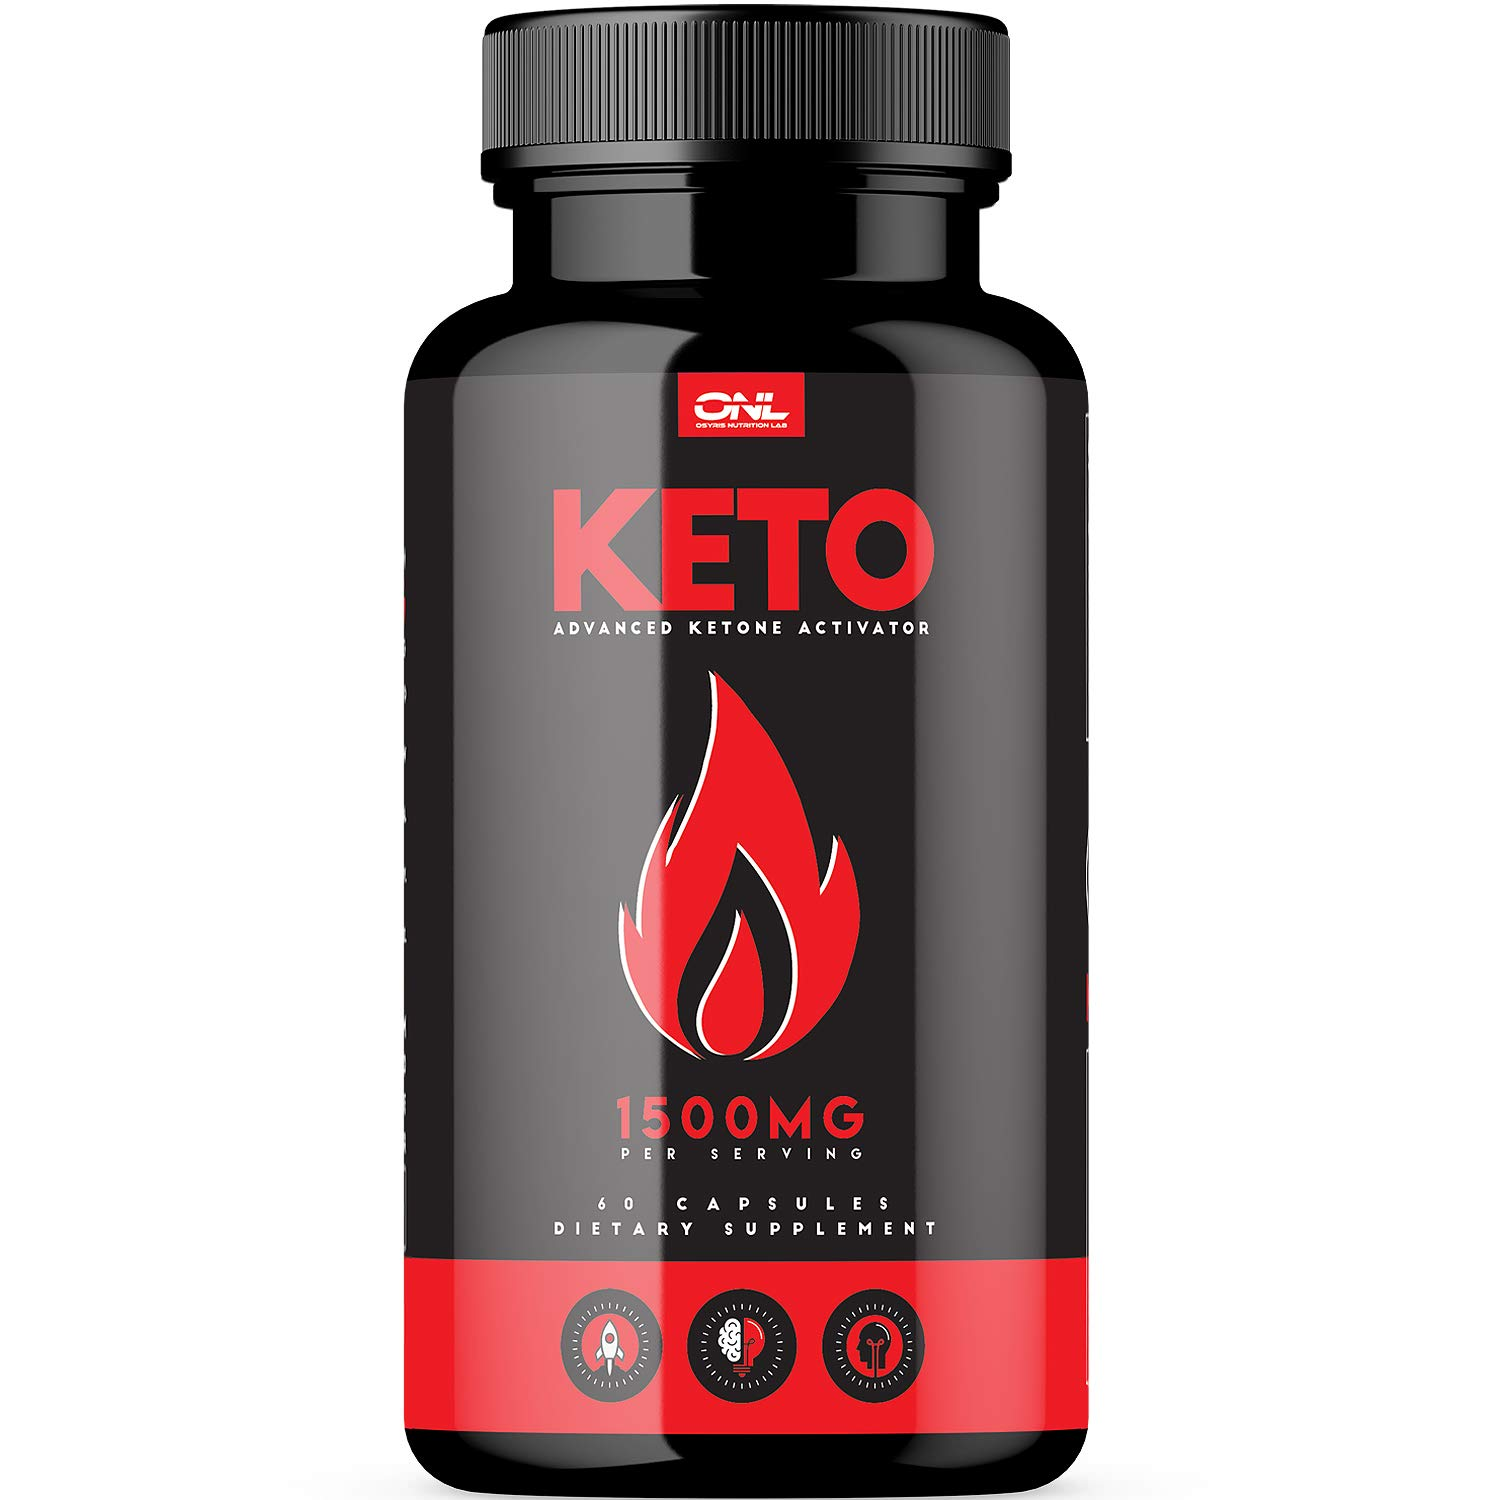 Keto | #1 Premium Keto Pills (60 Capsules) for Ketosis, Boost Energy & Metabolism with Exogenous Ketones, BHB Salts, Best Ketogenic Burner for Men & Women - Supports Keto Diet